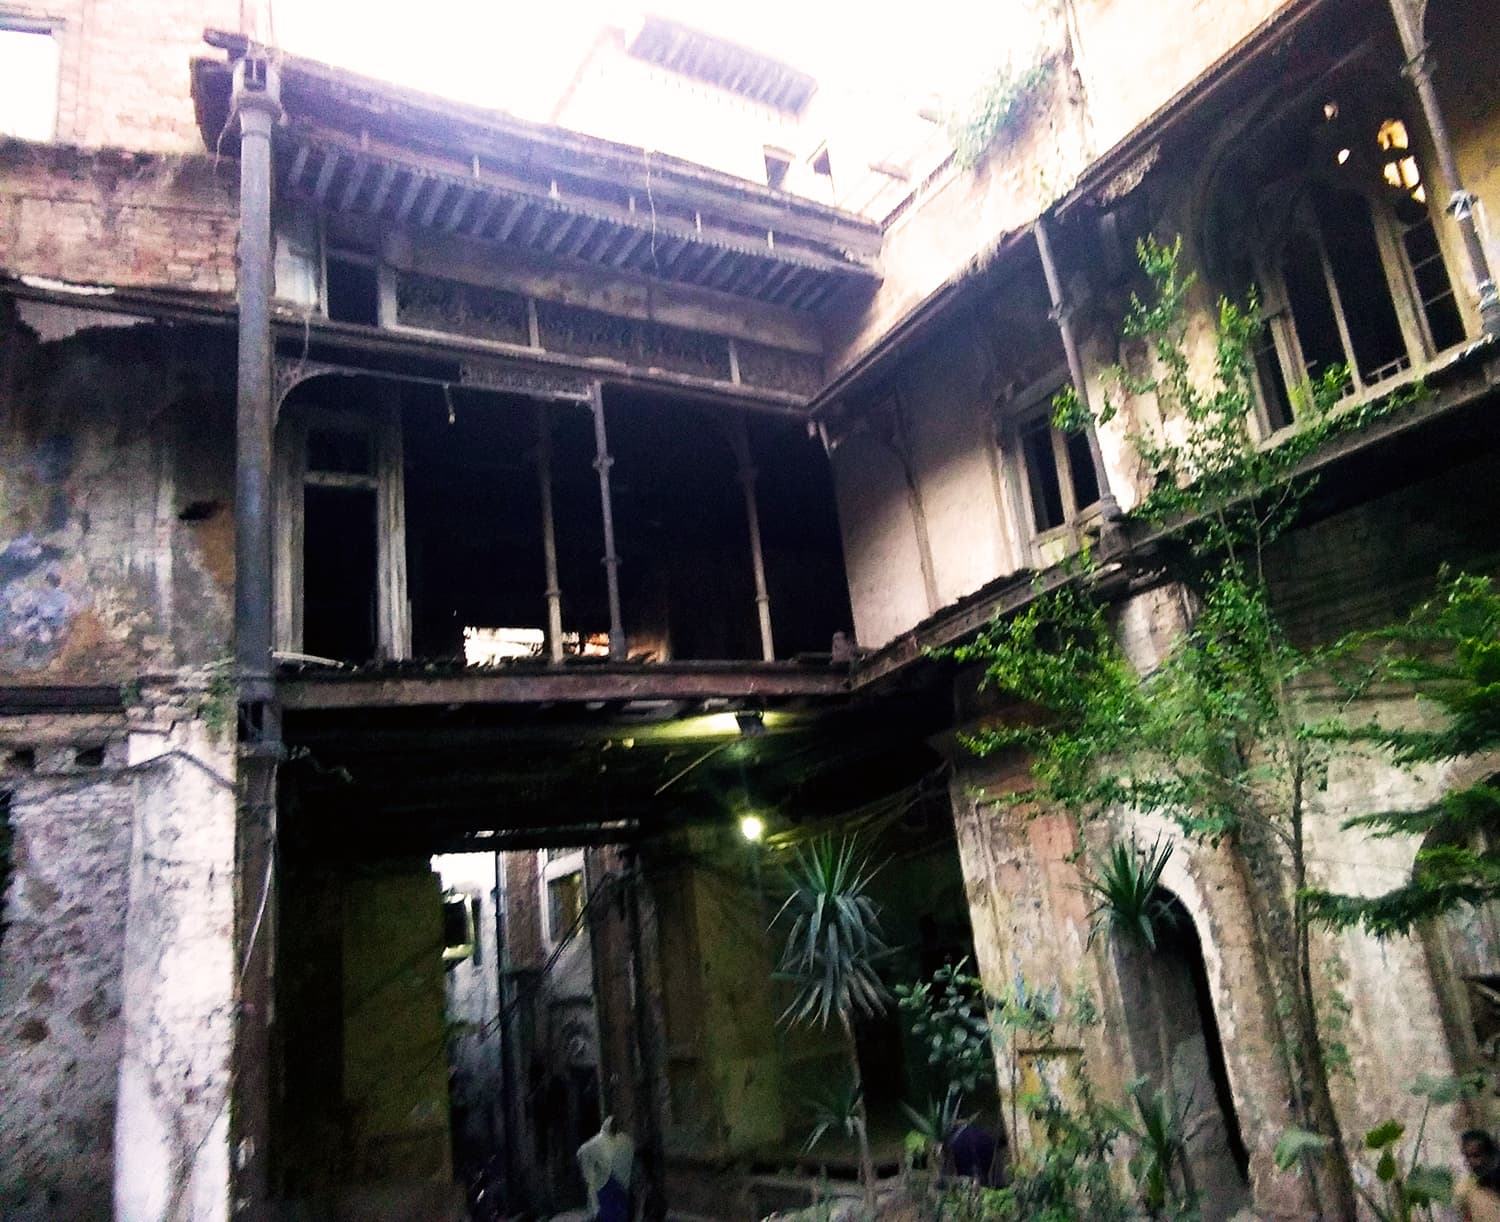 The dilapidated façade of Sujan Singh *haveli.*